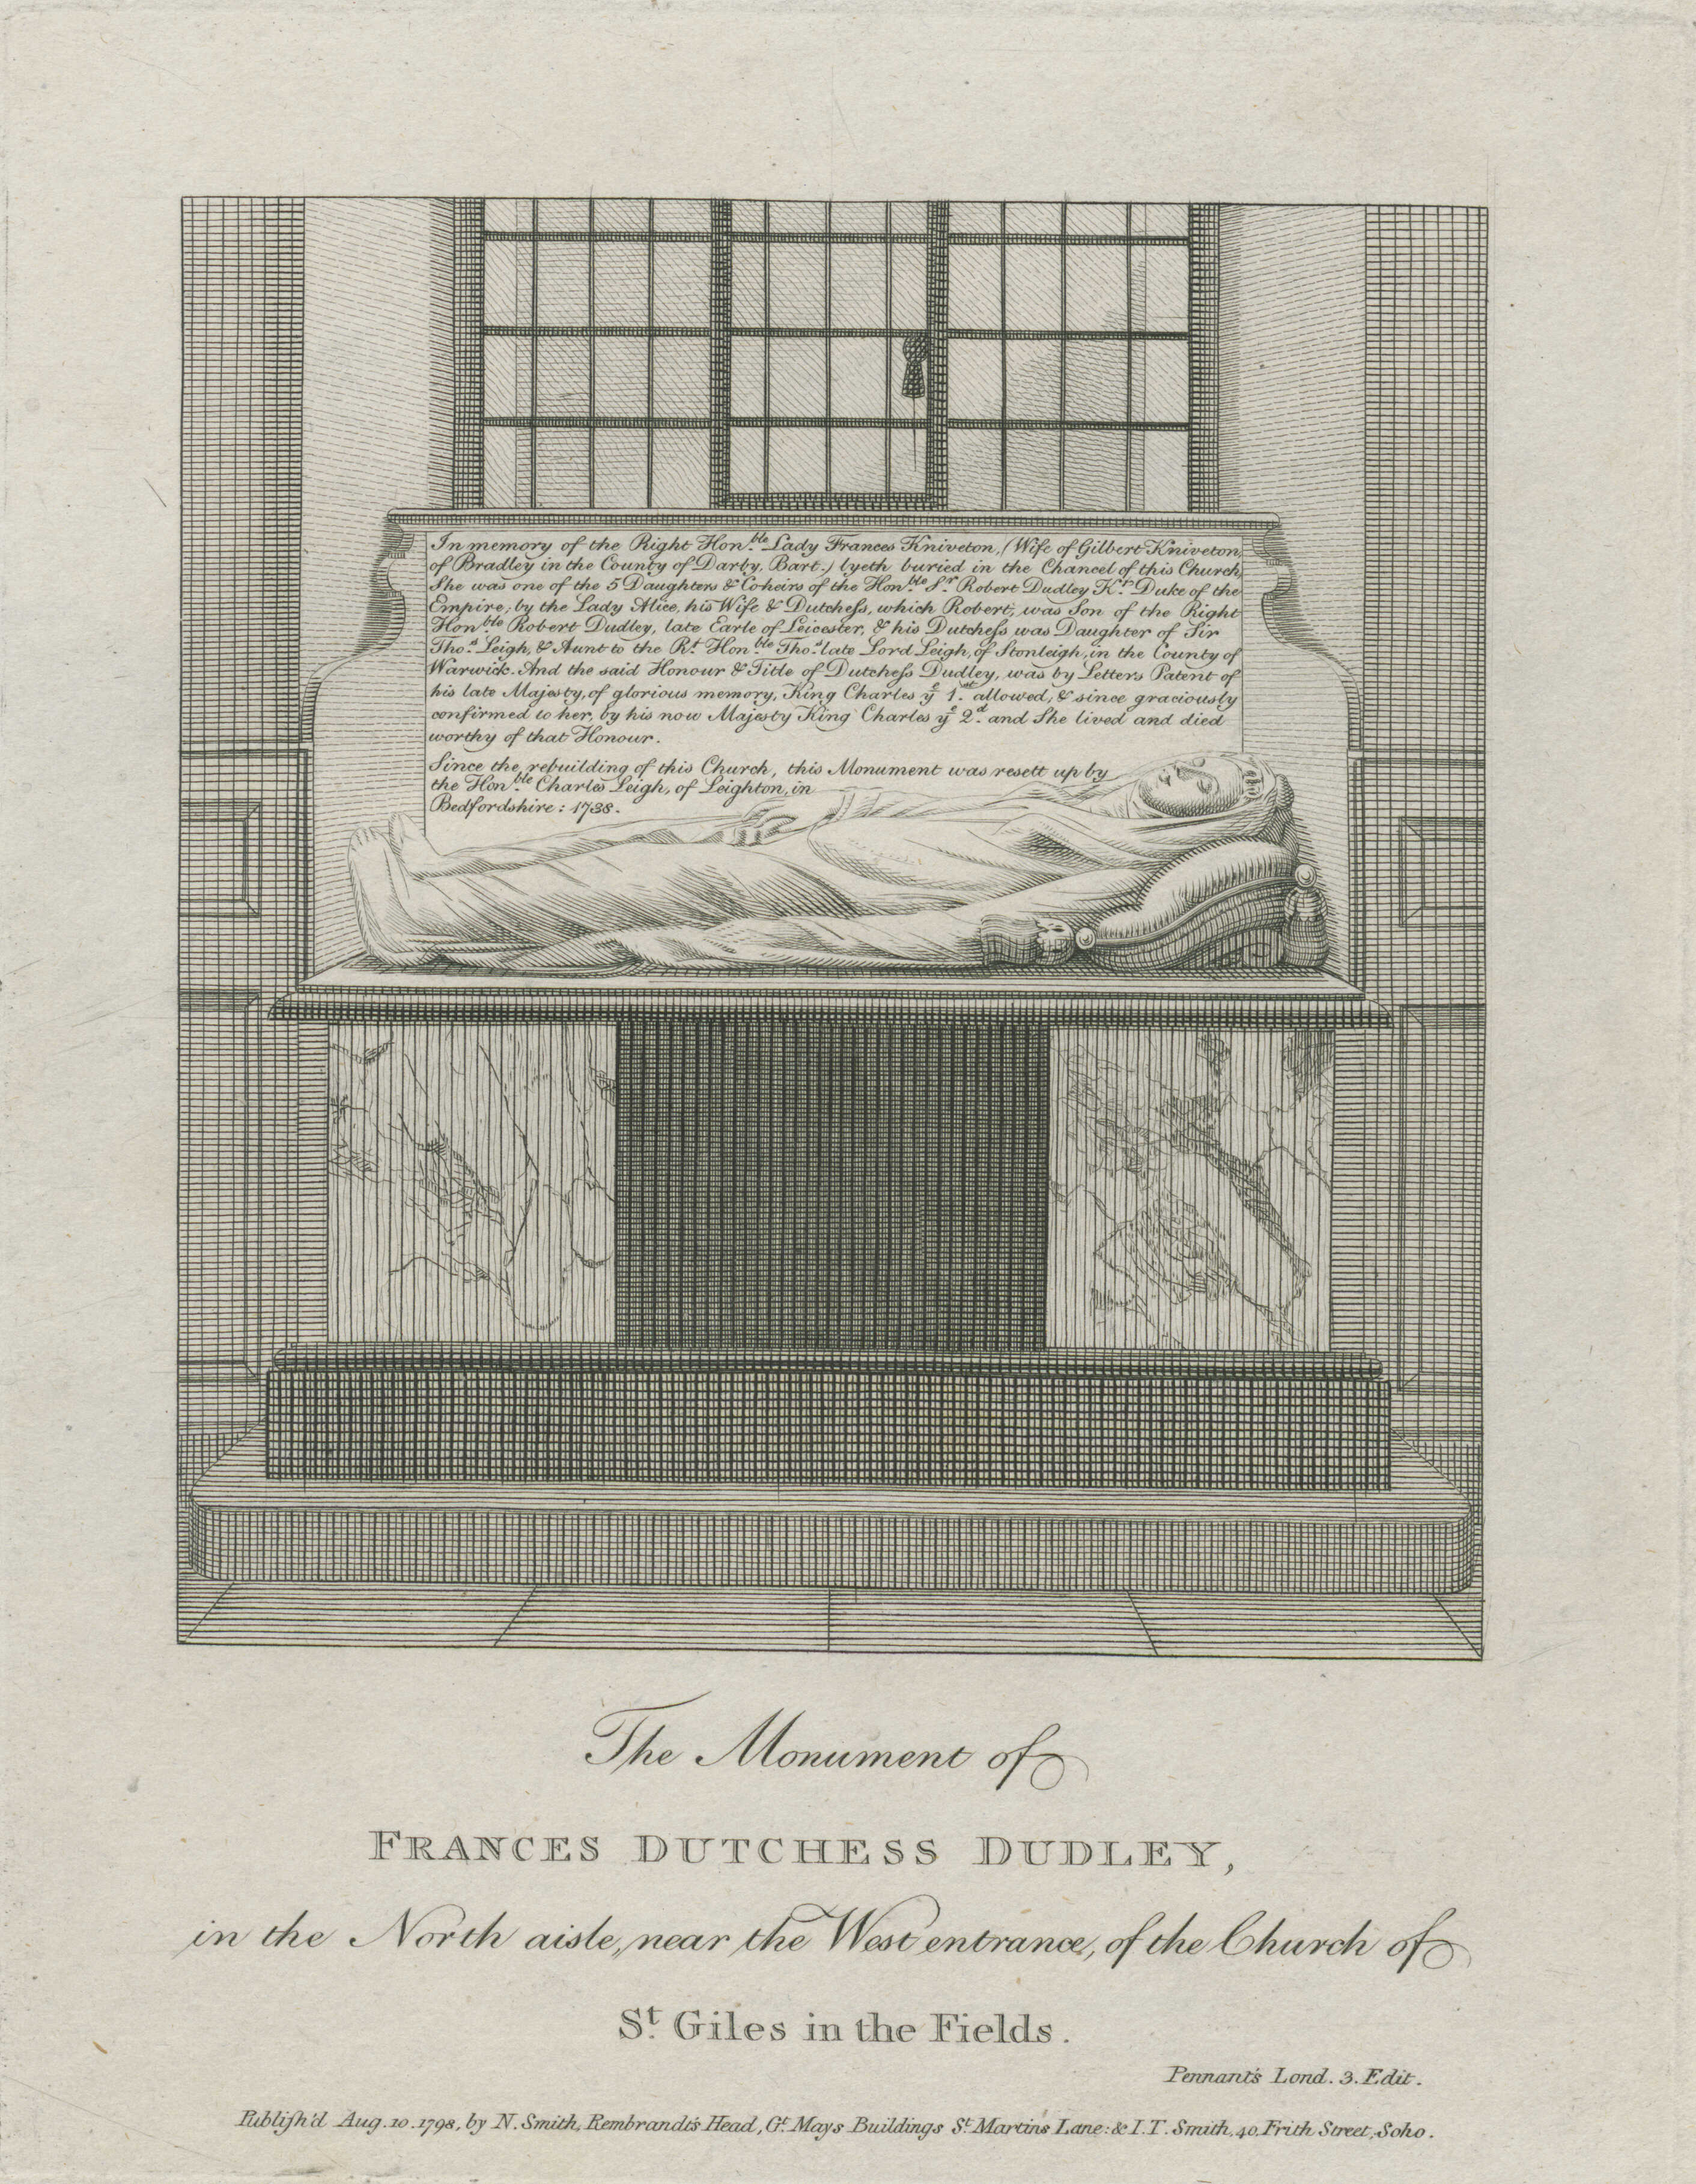 72-the-monument-of-frances-dutchess-dudley-in-the-north-aisle-near-the-west-entrance-of-the-church-of-st-giles-in-the-fields